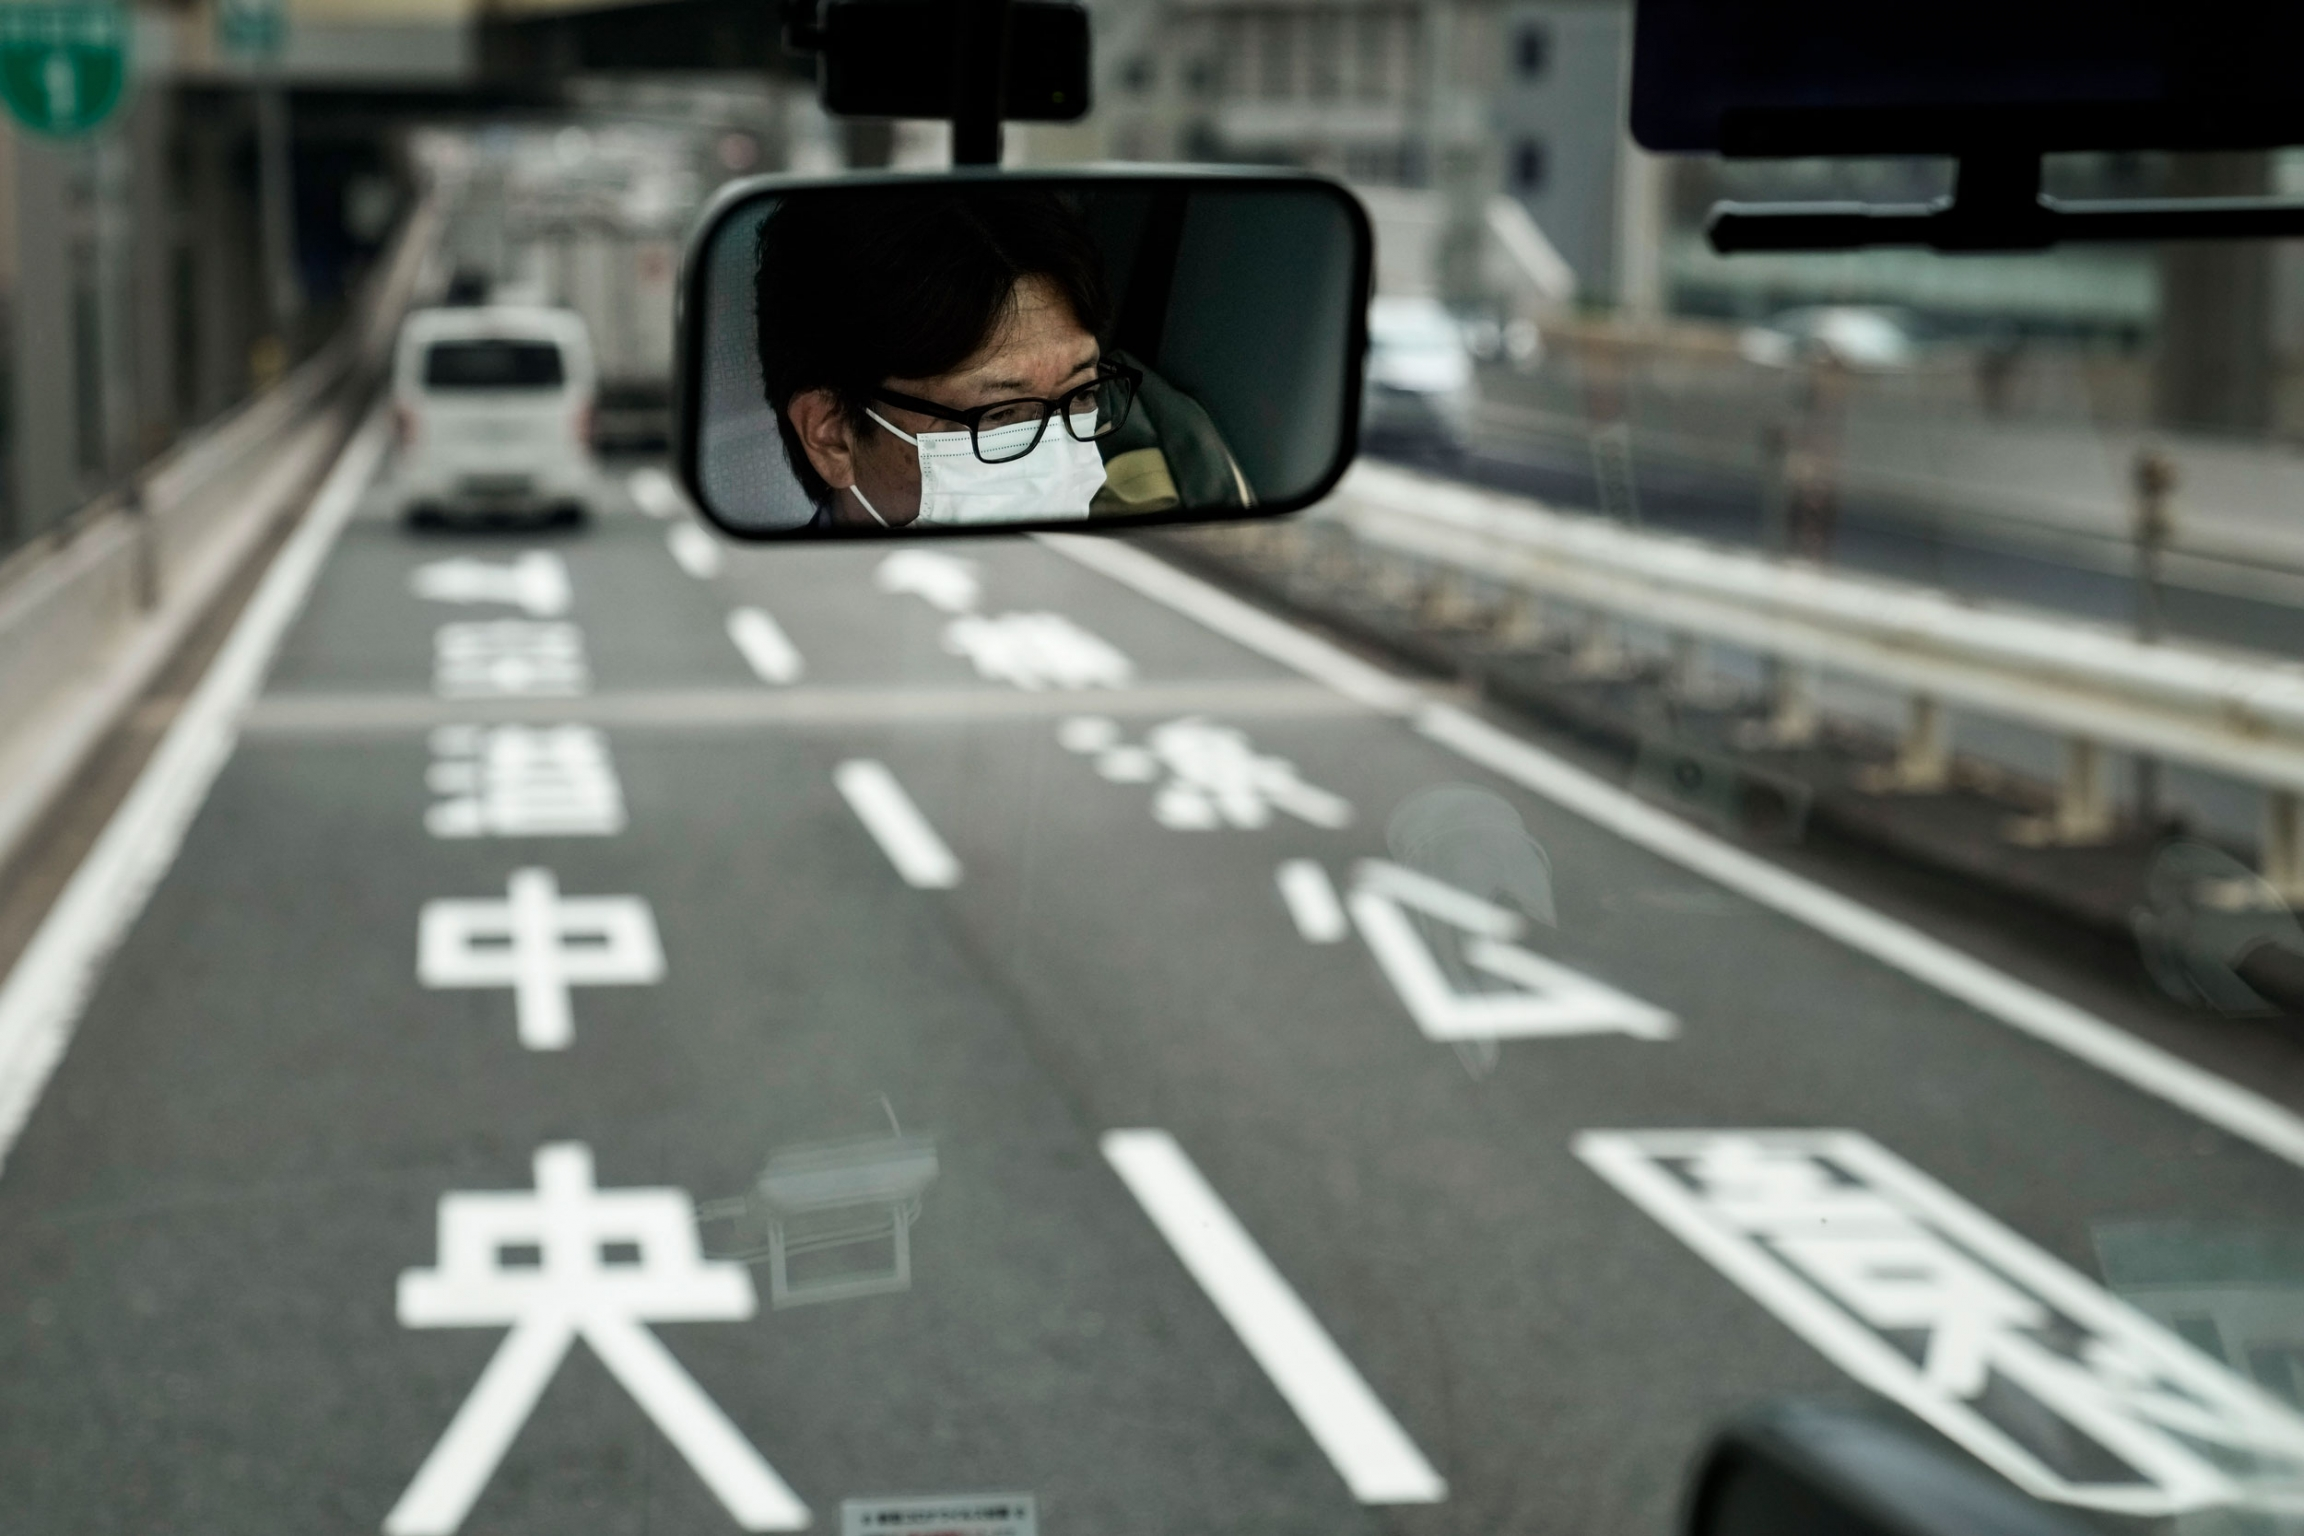 The face of a bus driver is shown covered in a white mask with a two lane road ahead.